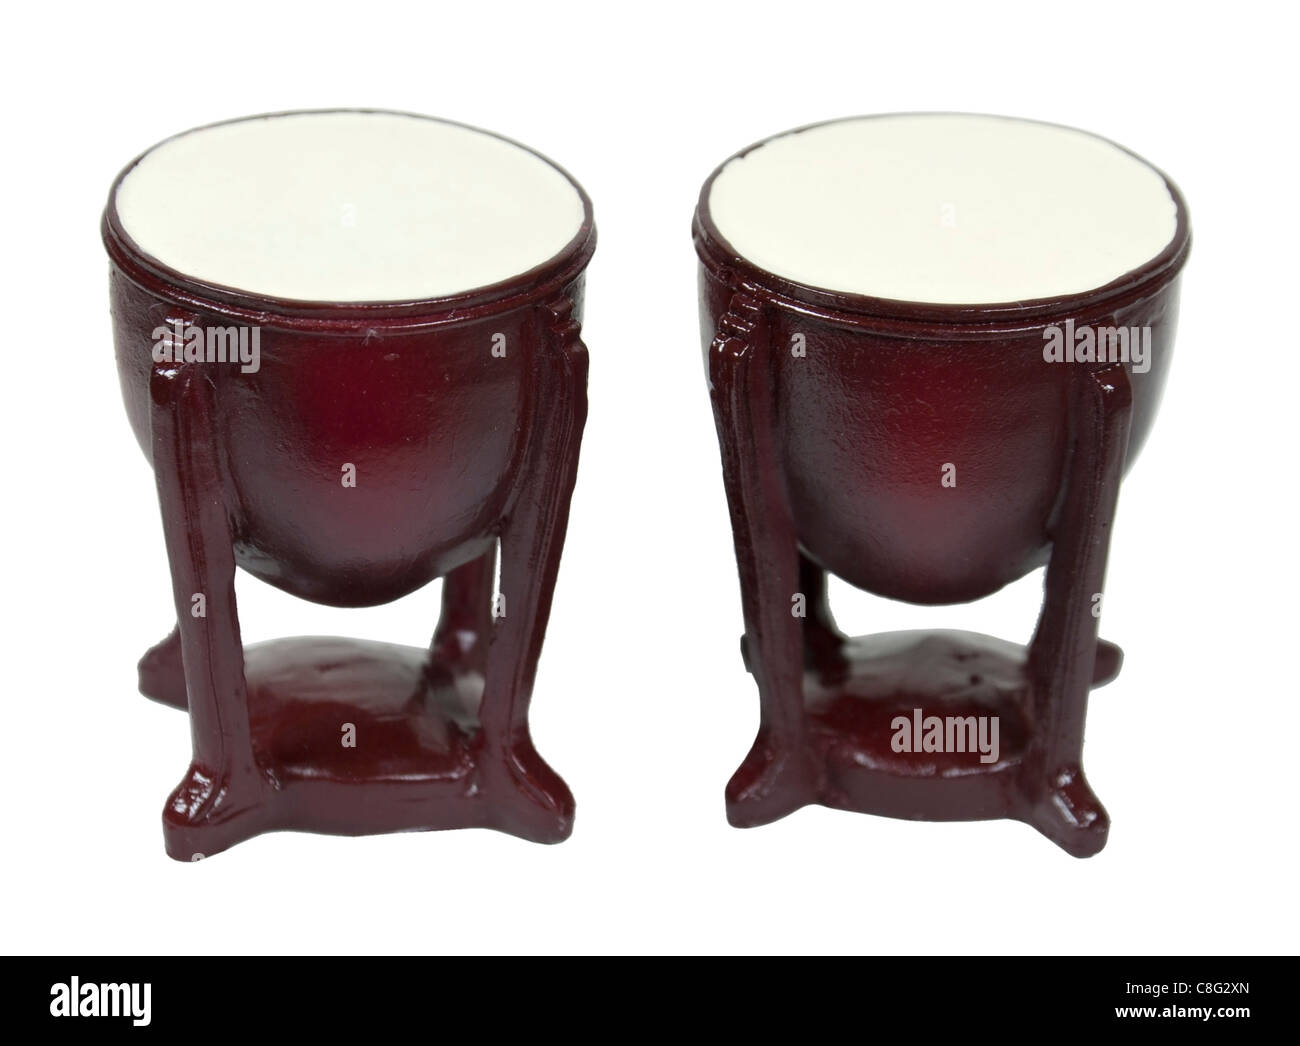 Wooden bongo drums musical instruments with stands - path included - Stock Image